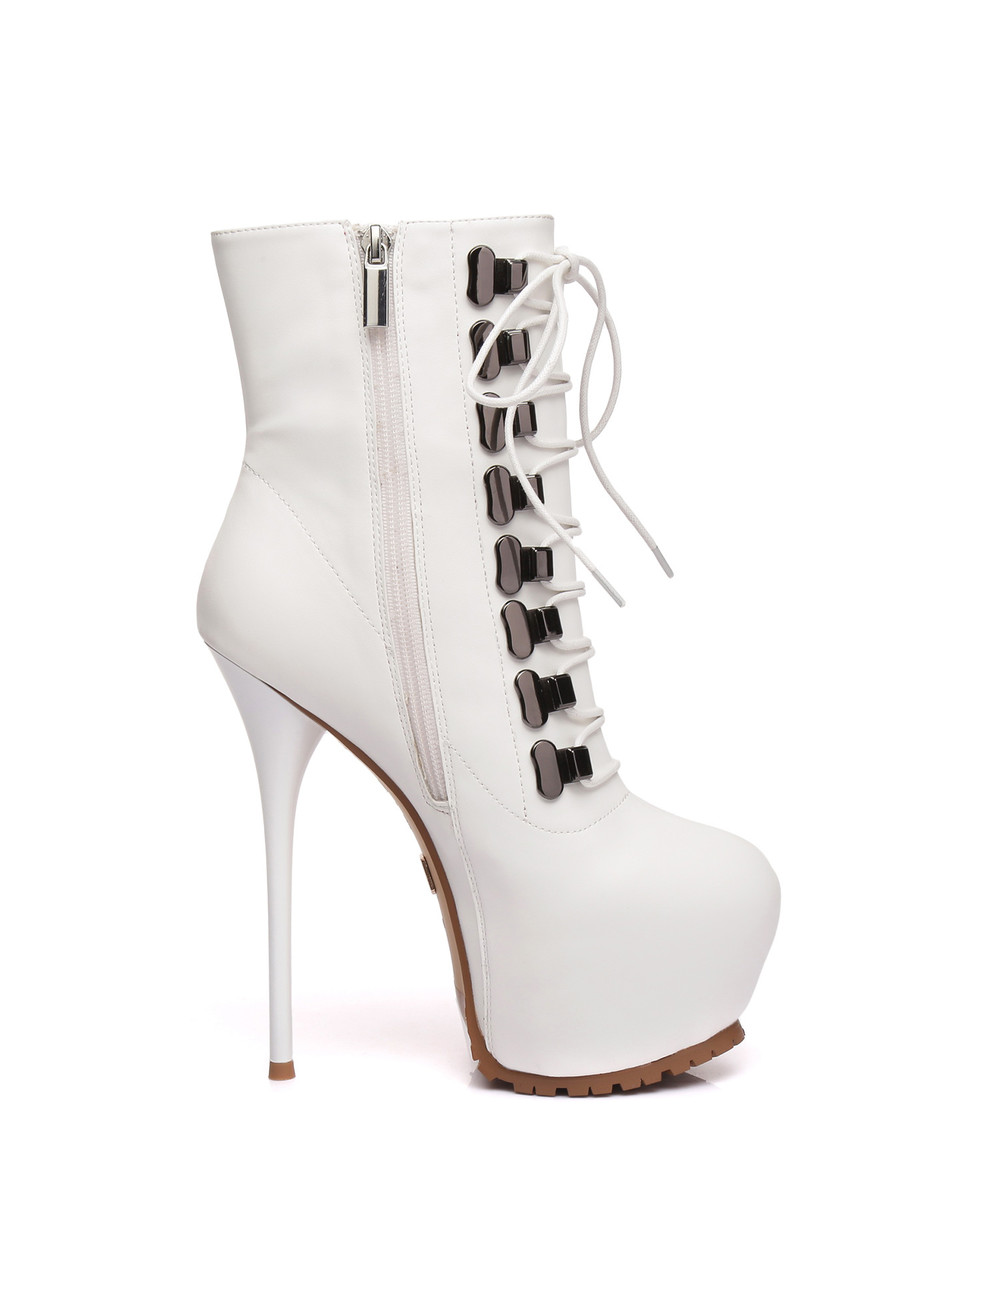 Giaro Giaro Hunt white matte lace-up ankle boots